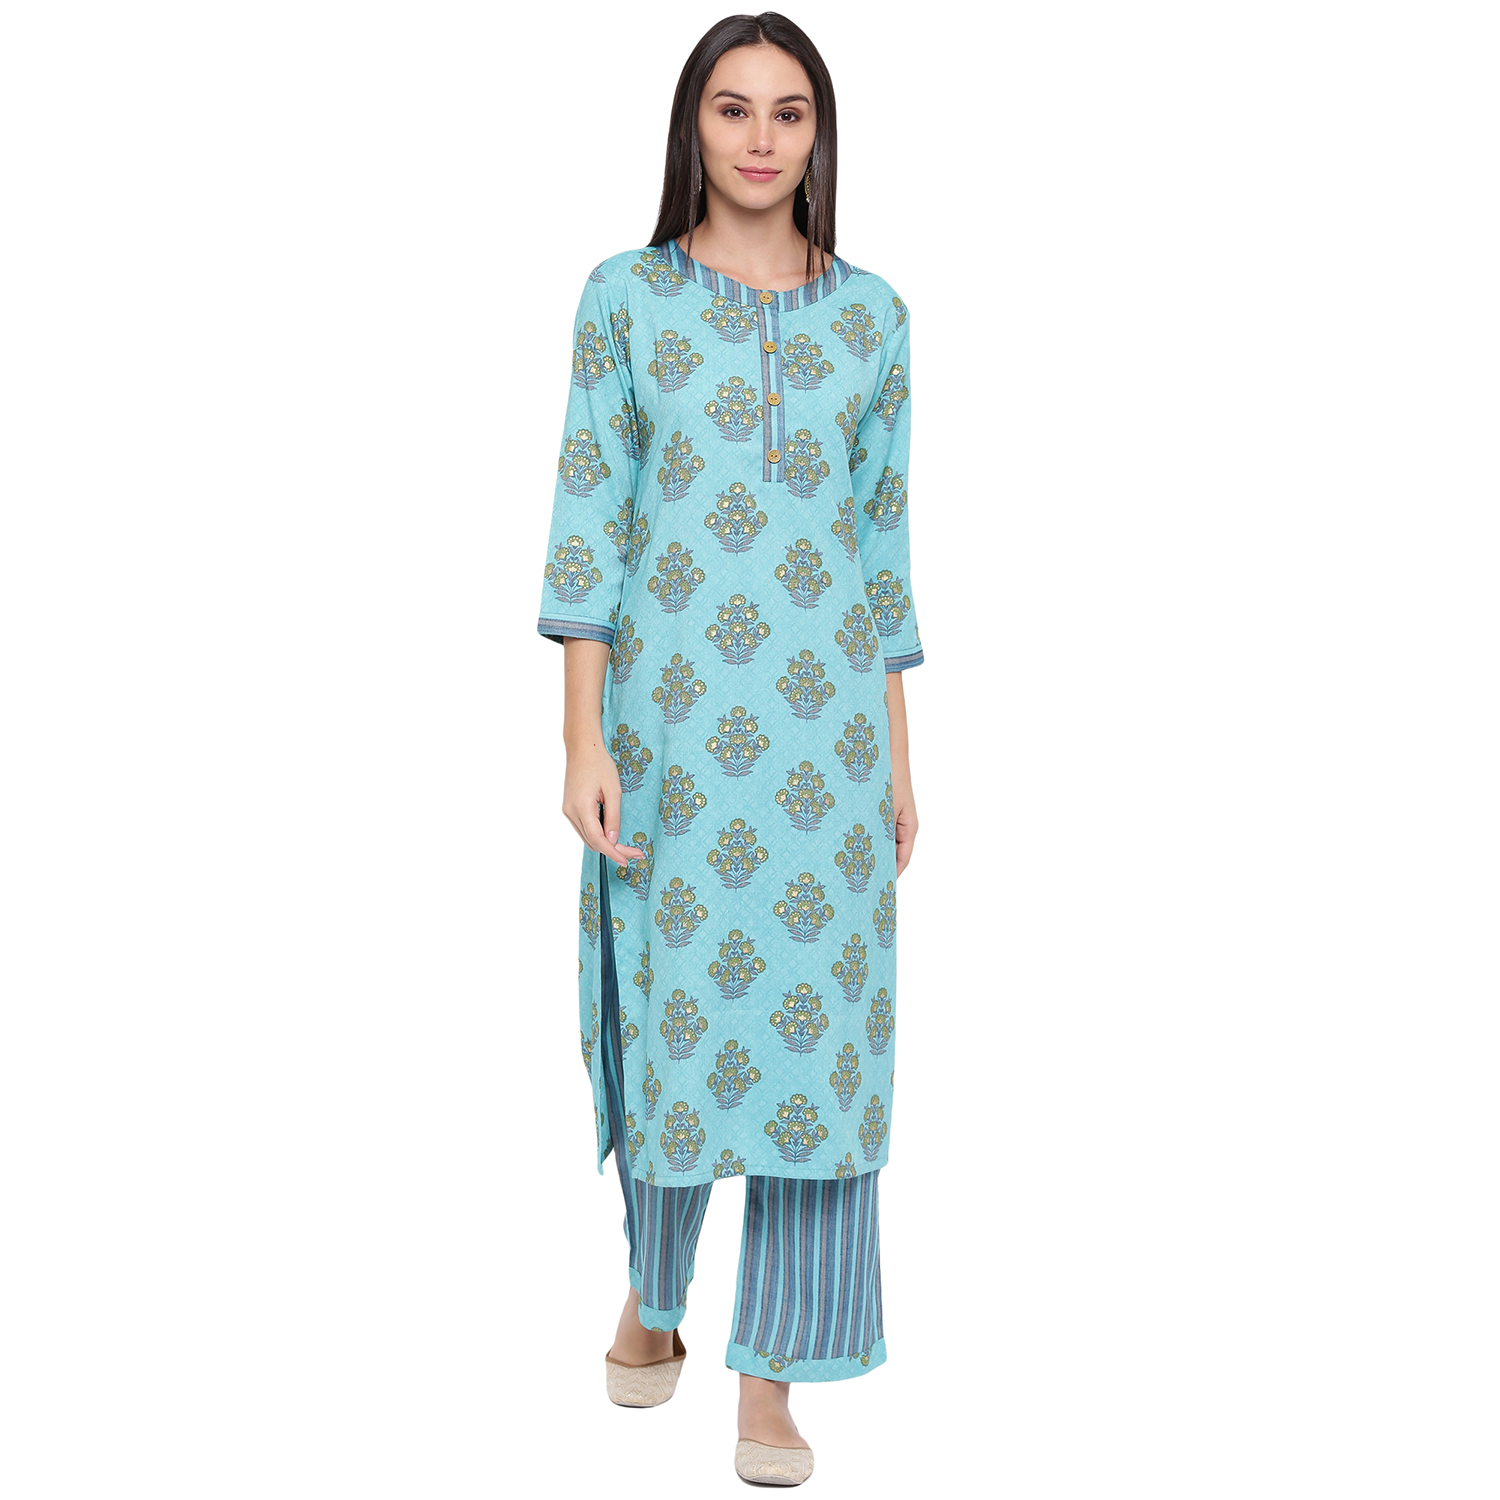 Fabnest | Fabnest womens rayon light blue printed pant and kurta set Kurta with round neck and wooden buttons with stripe pants.